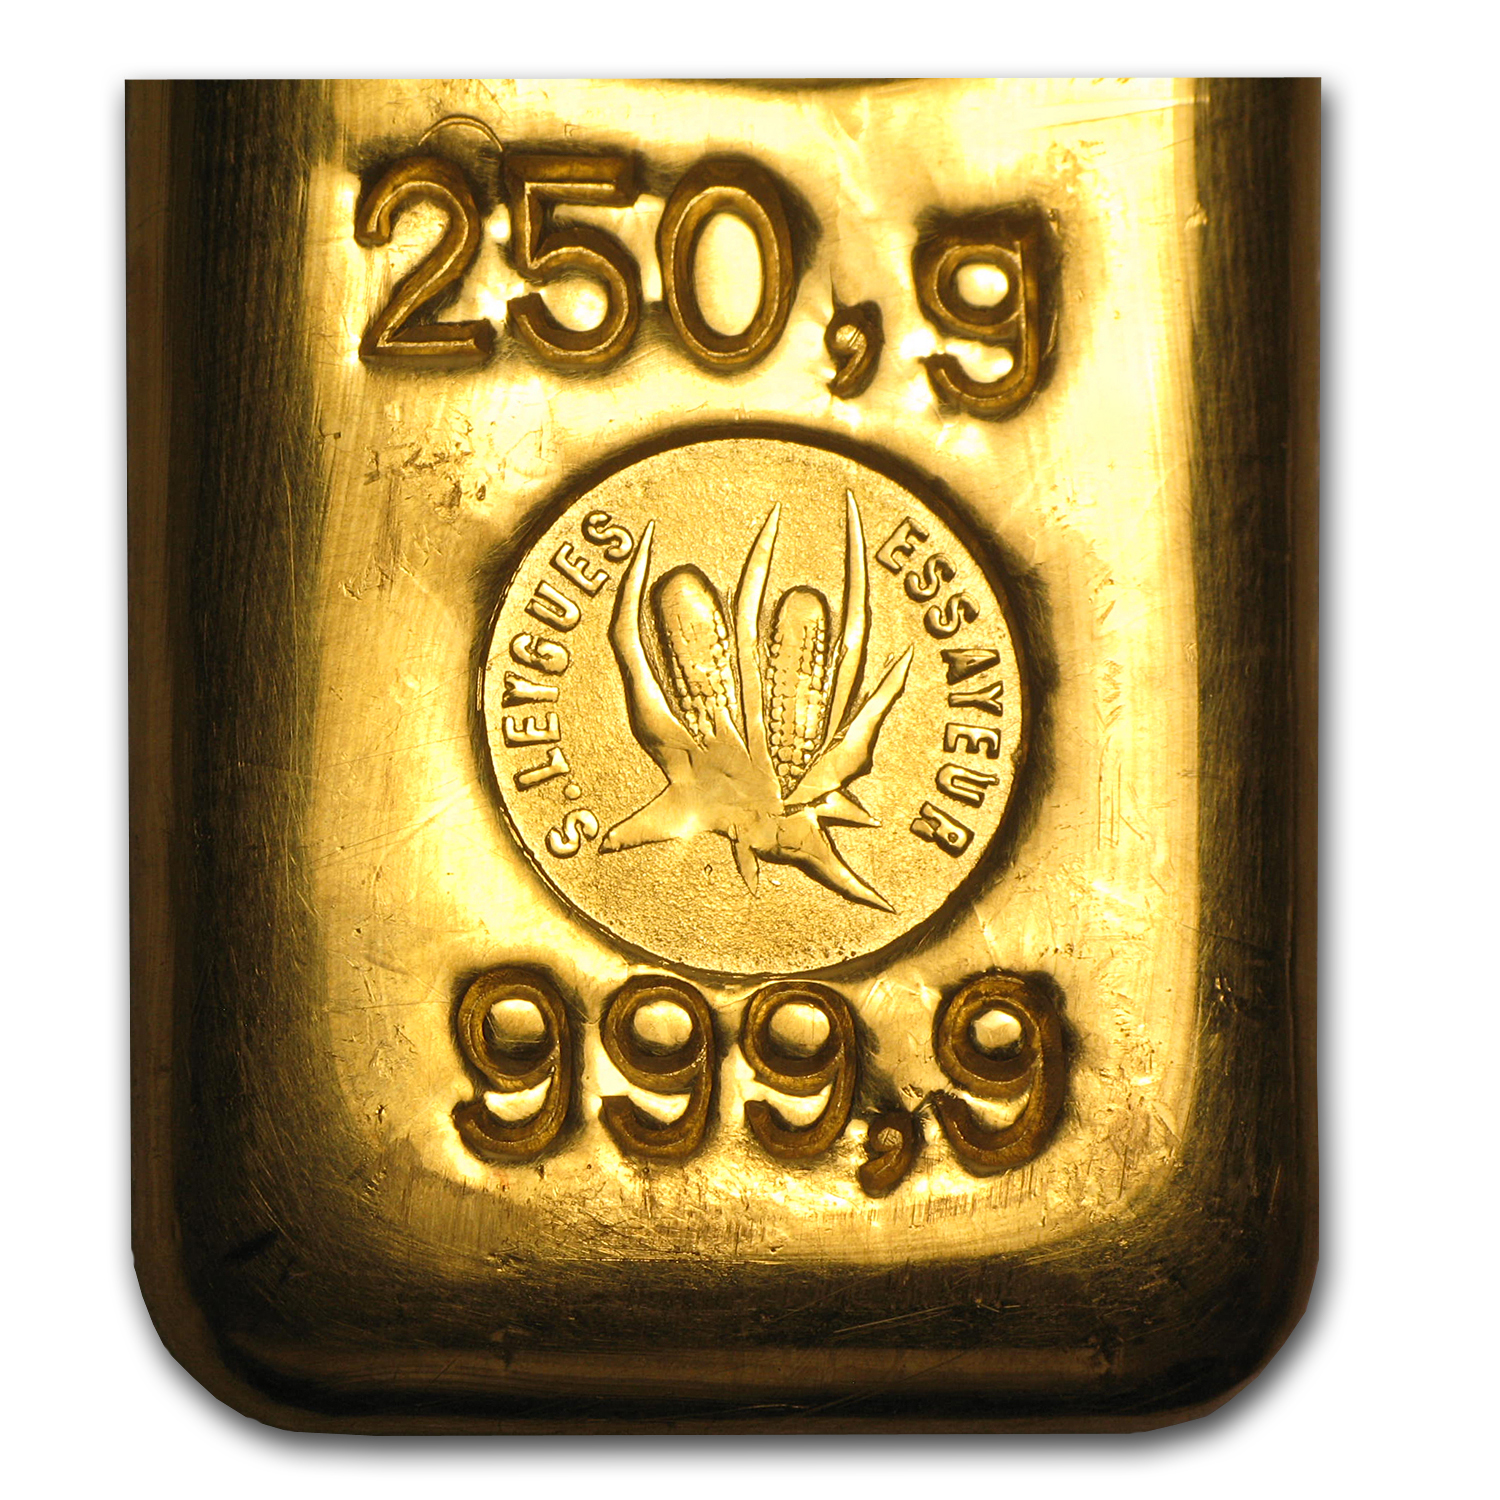 250 gram Gold Bars - Swiss Bank Corporation Gold Bar